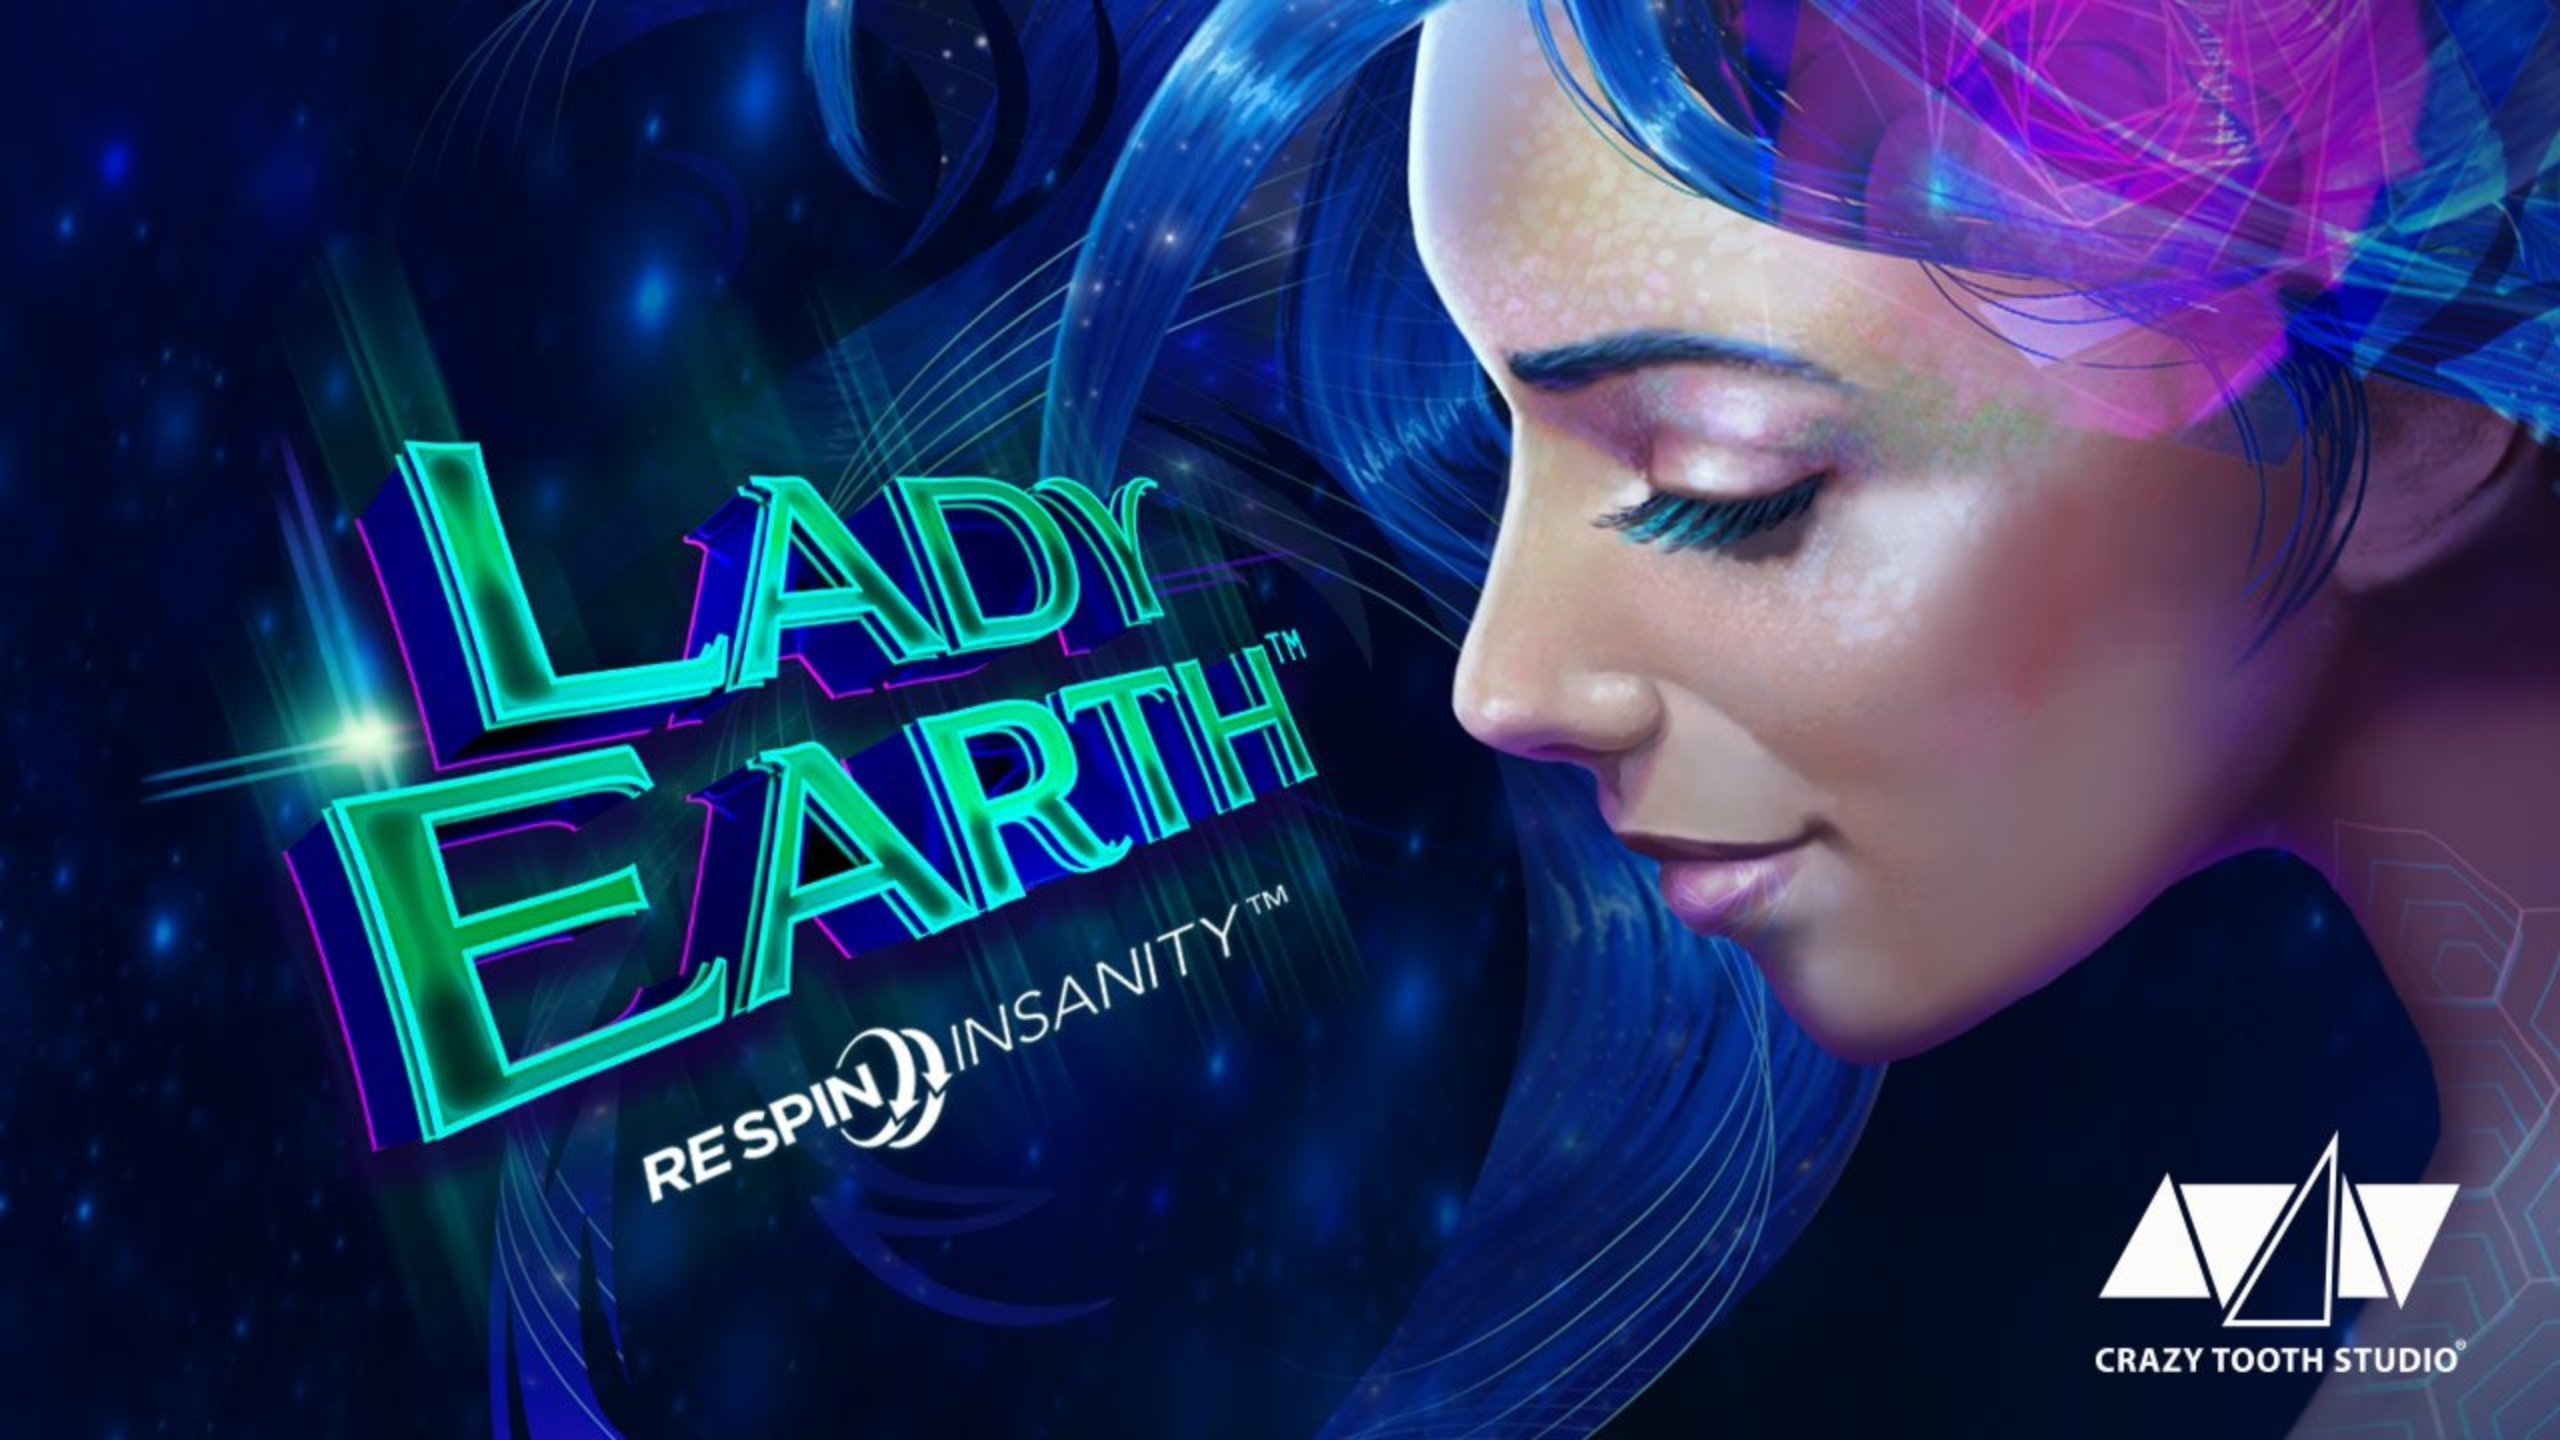 Se Lady Earth Online Slot Demo Game, Crazy Tooth Studio